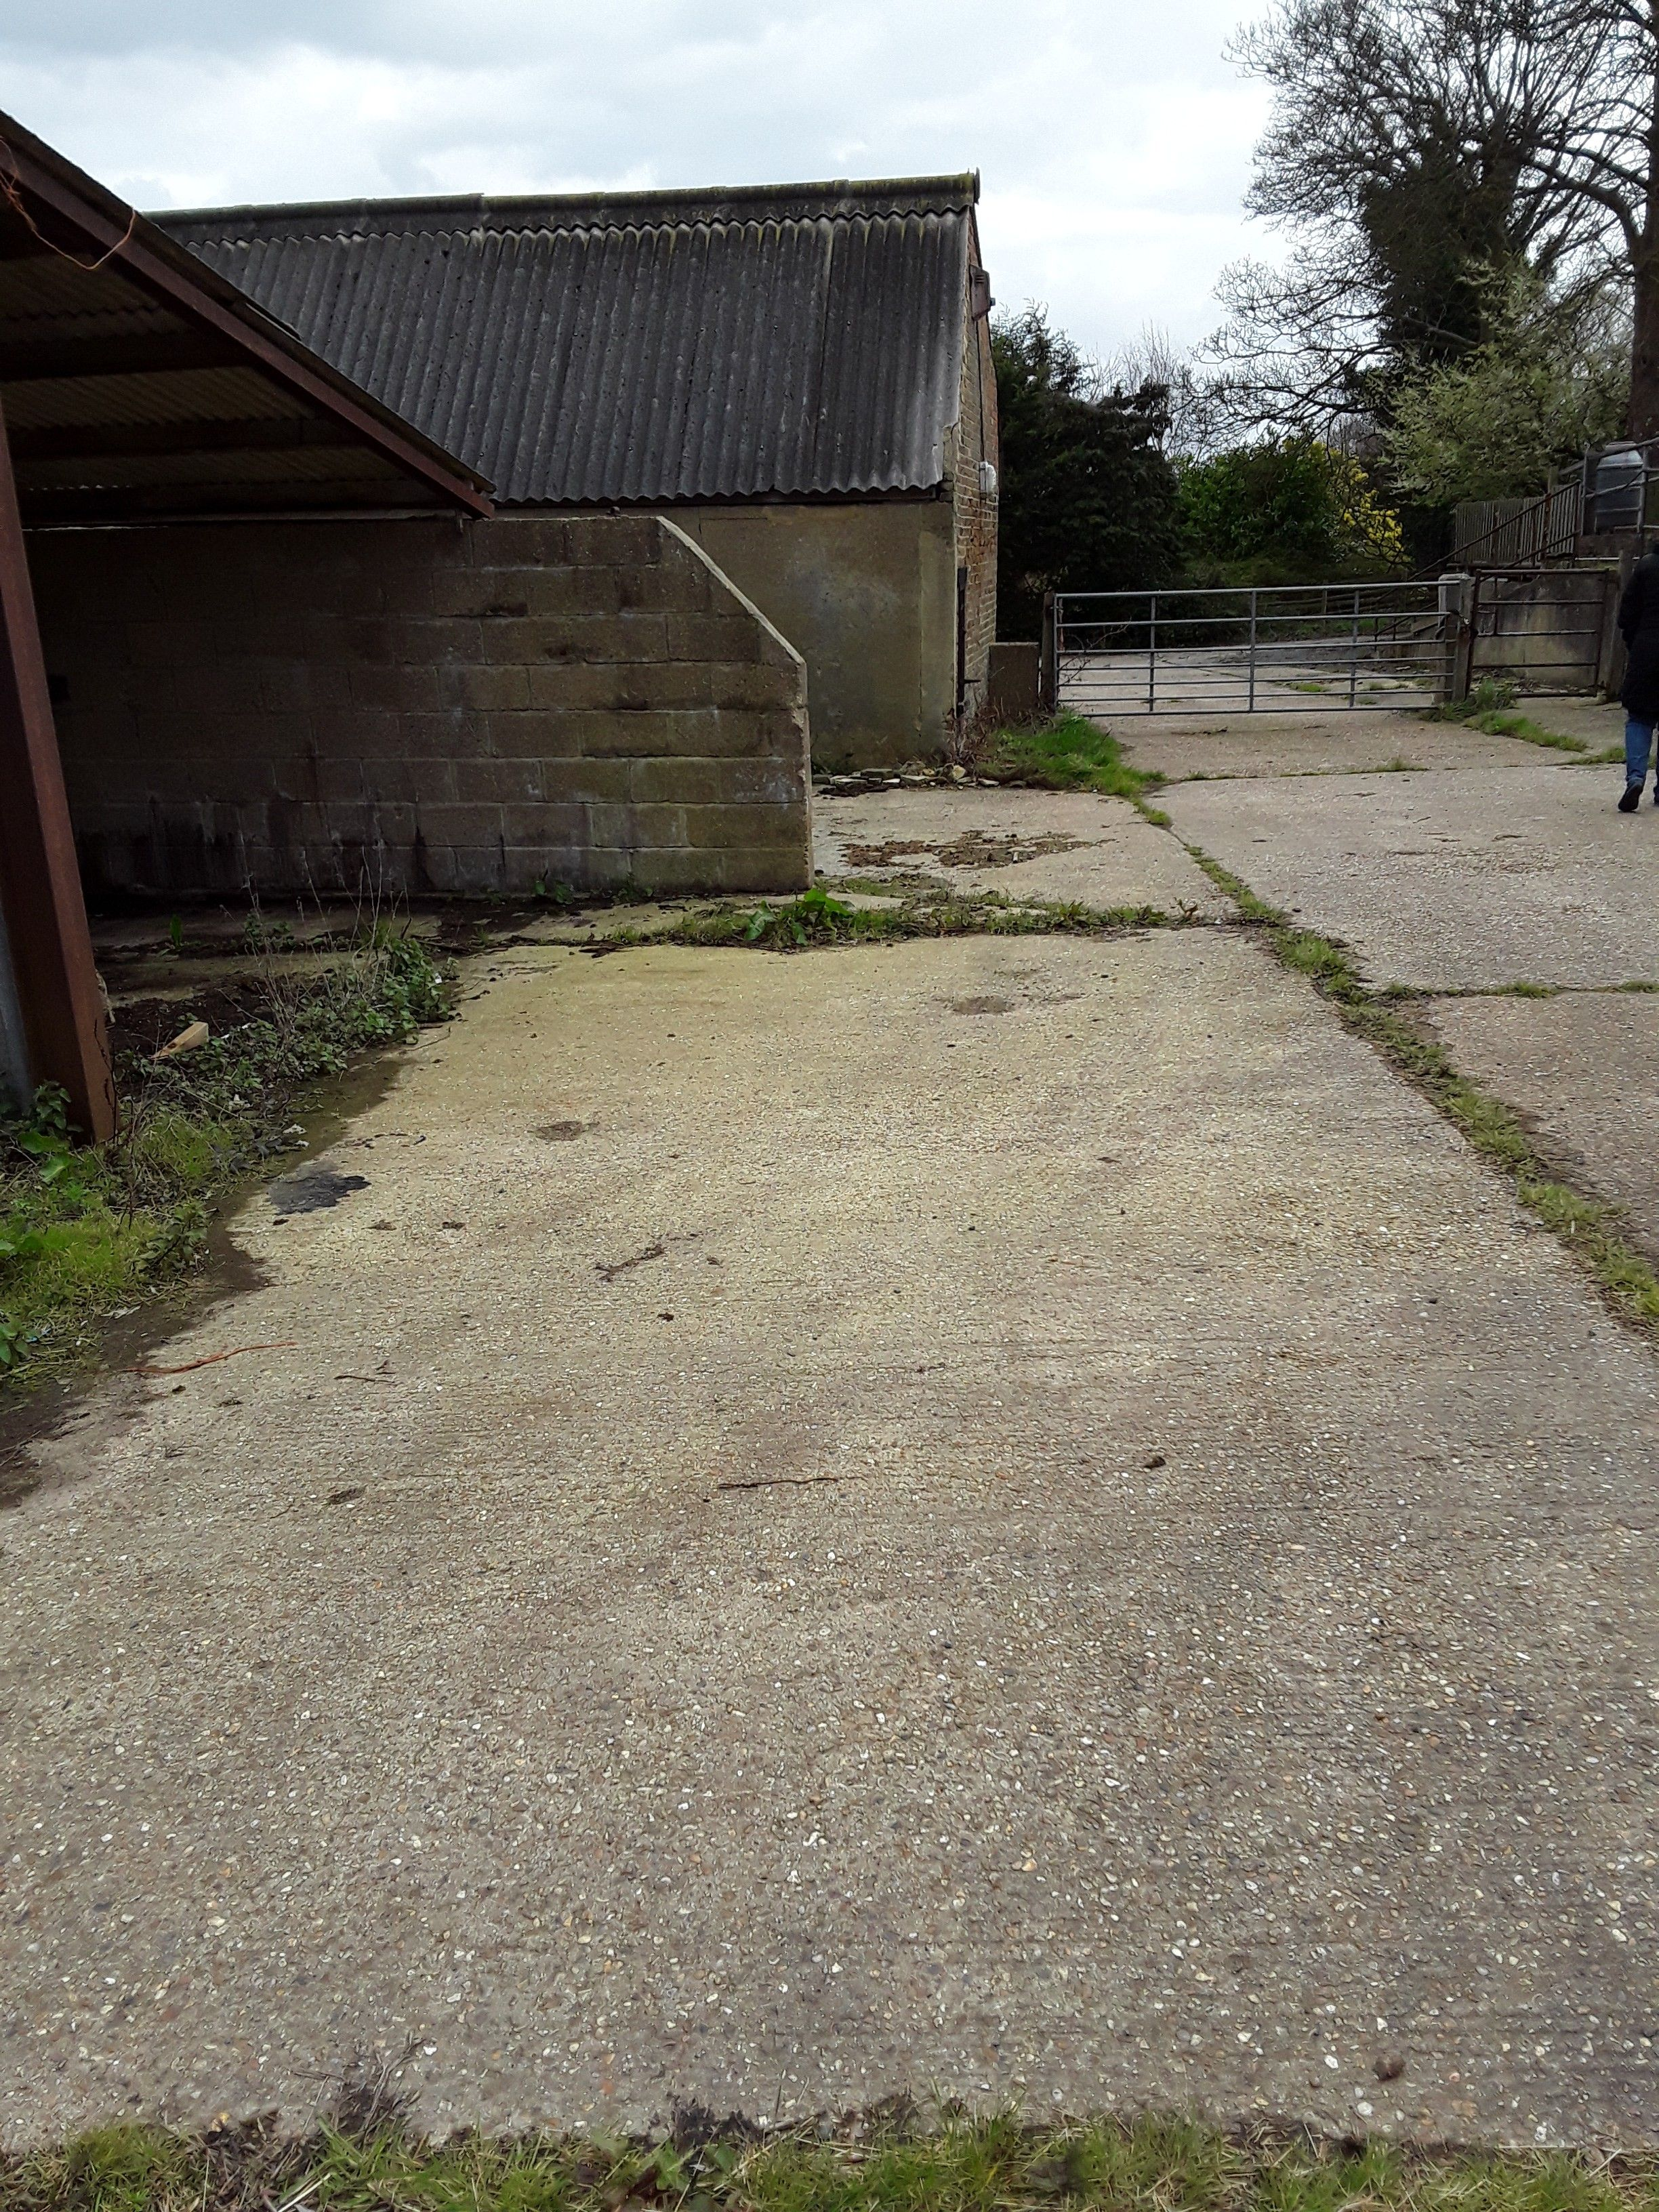 Another Horse Barn In Brentwood With Its Roof Prepared For Removal Asbestos Removal Demoliton Barn Essex Kent Lond Horse Barn Asbestos Asbestos Removal